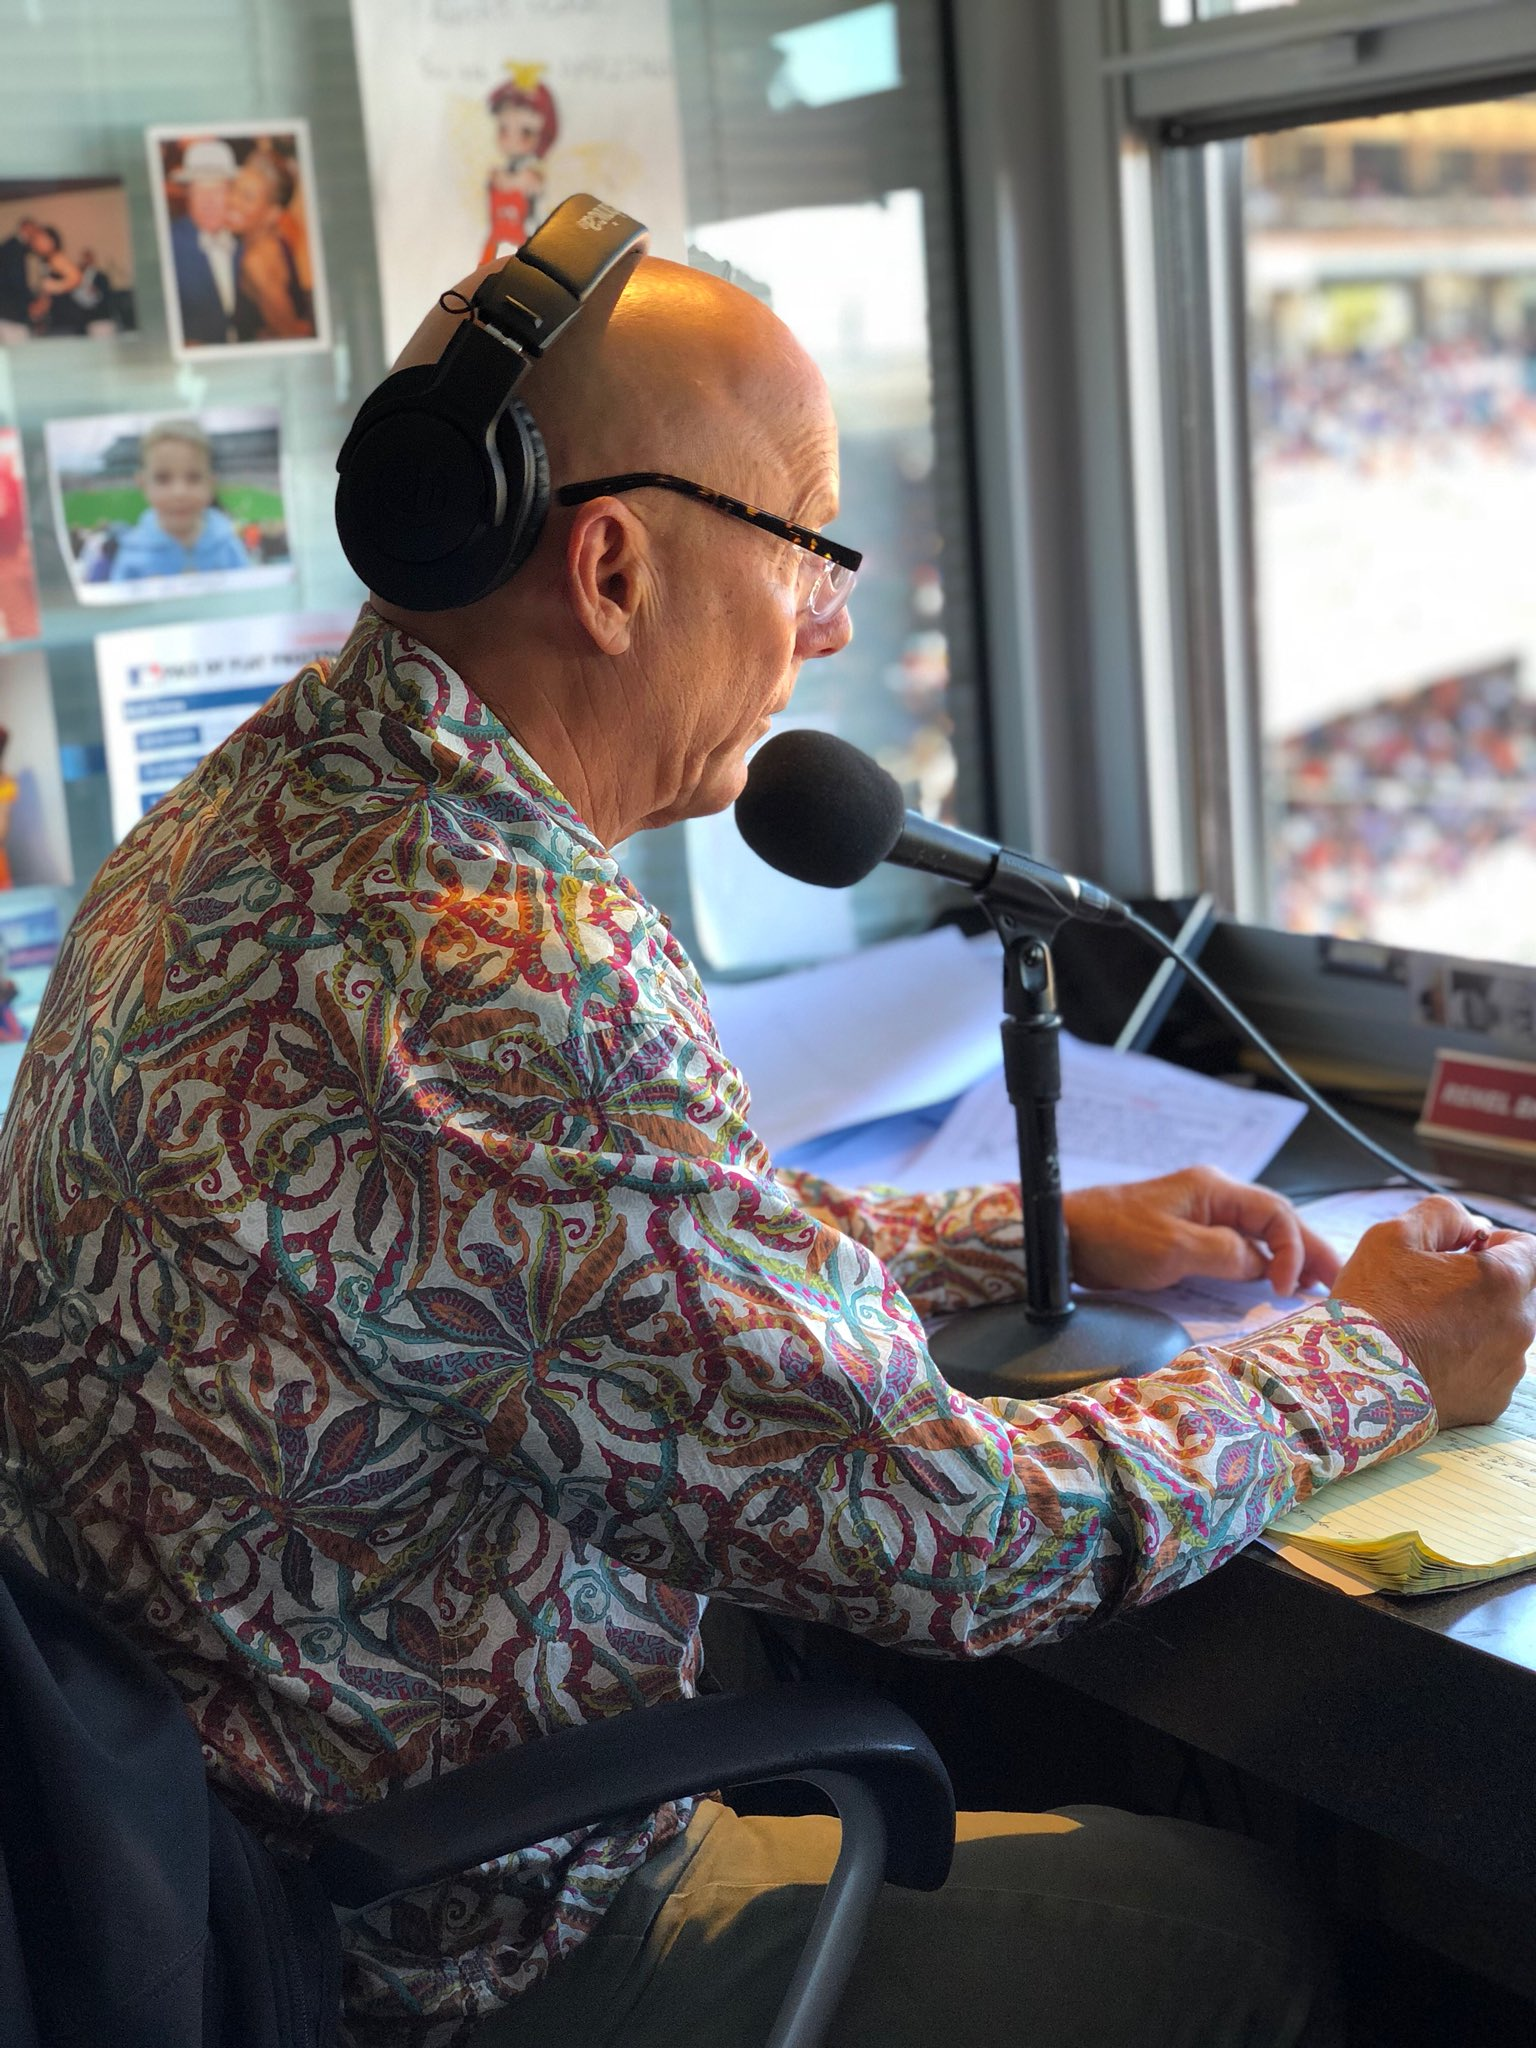 Pinch hitting on the @ATTPark �� today: #ForeverGiant @TimFlannery2   #SFGiants https://t.co/yf48PFMKqk